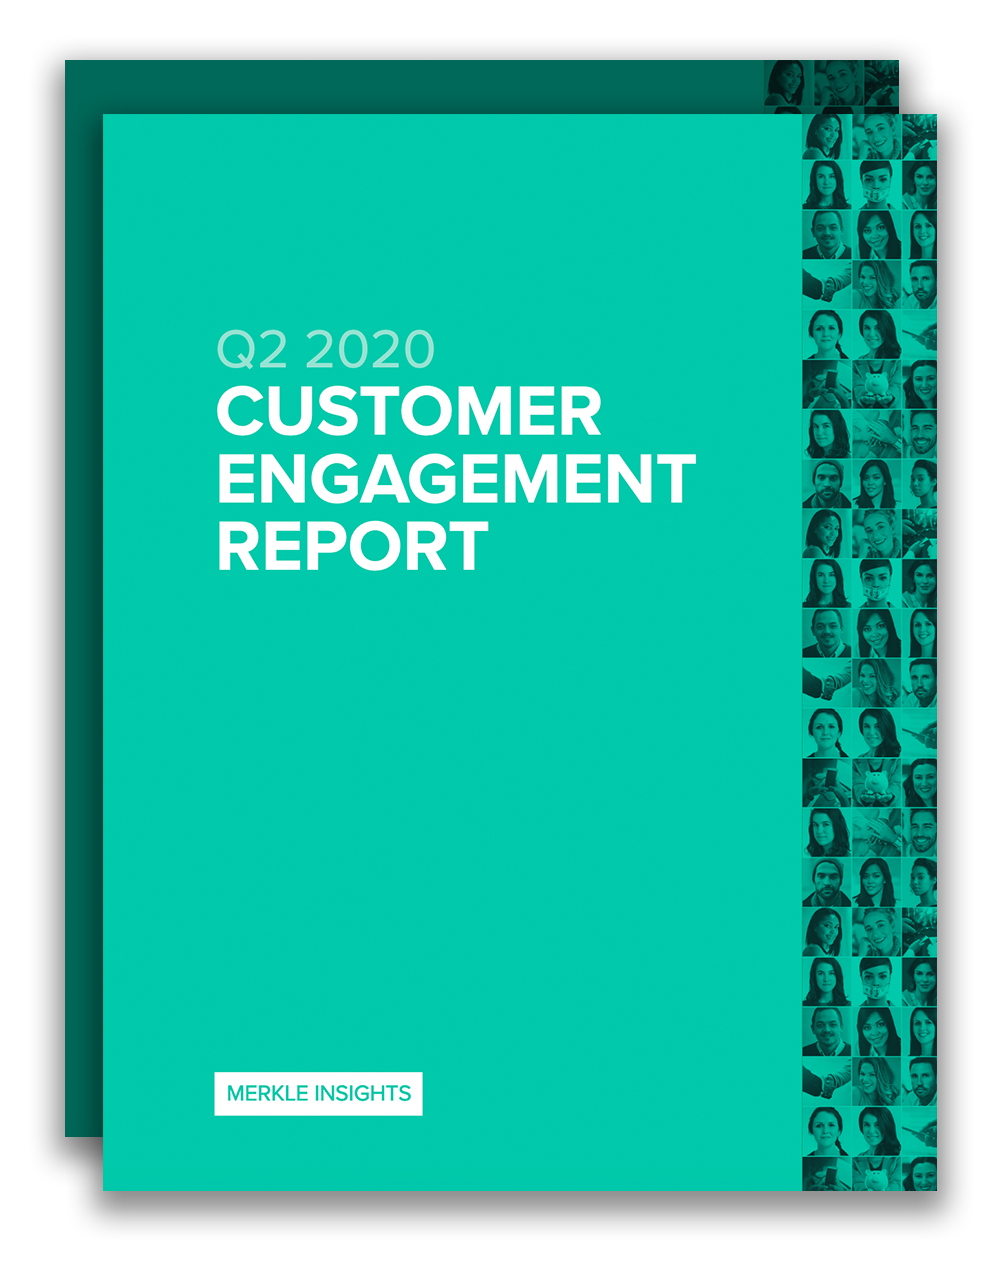 Customer Engagement Report: Q2 2020